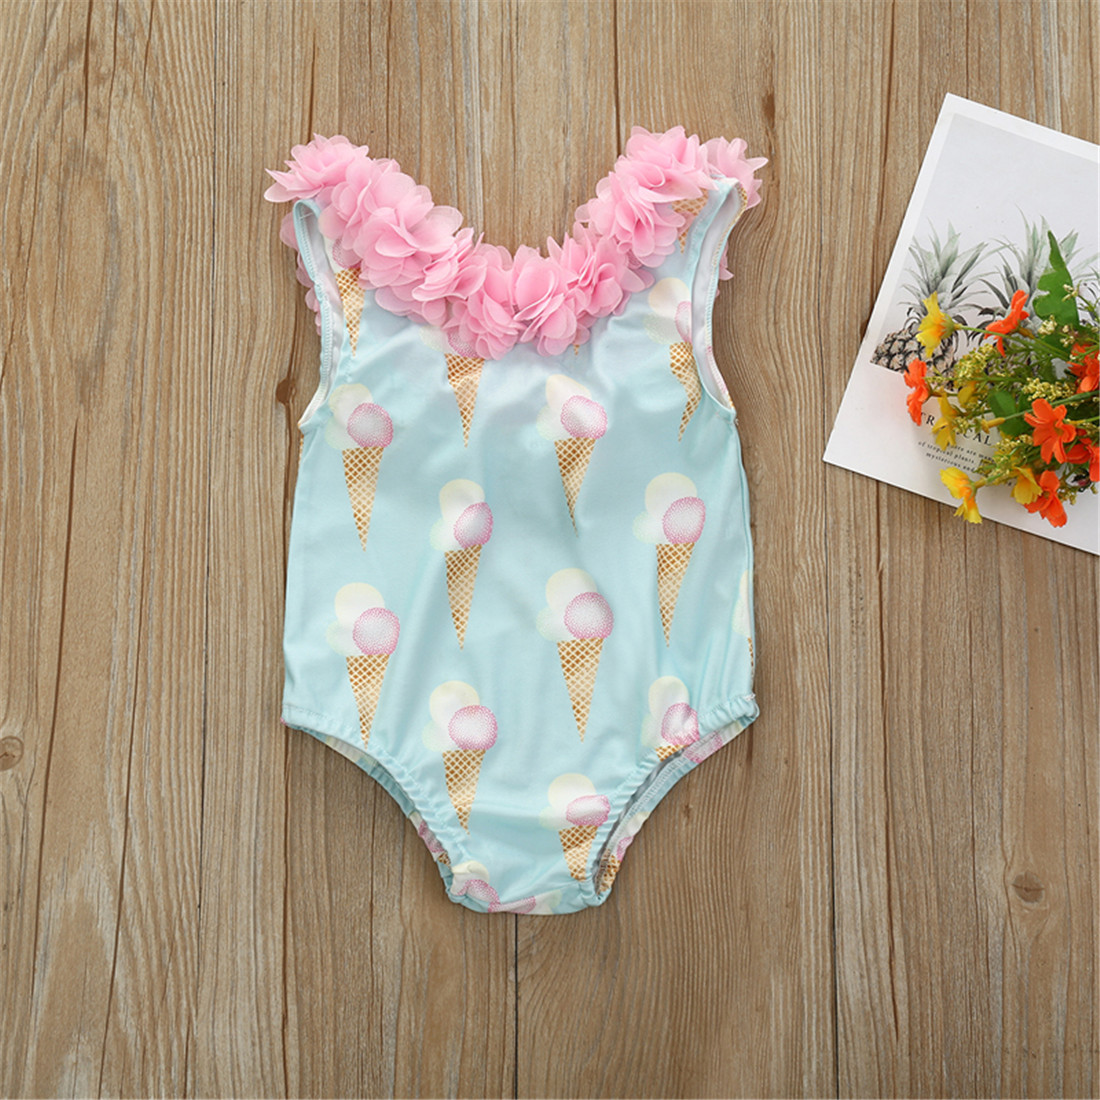 Pudcoco Toddler Baby Girl Clothes Ice Cream Print Sleeveless Flower Ruffle Swimwear Swimsuit Swimming Beach Clothes